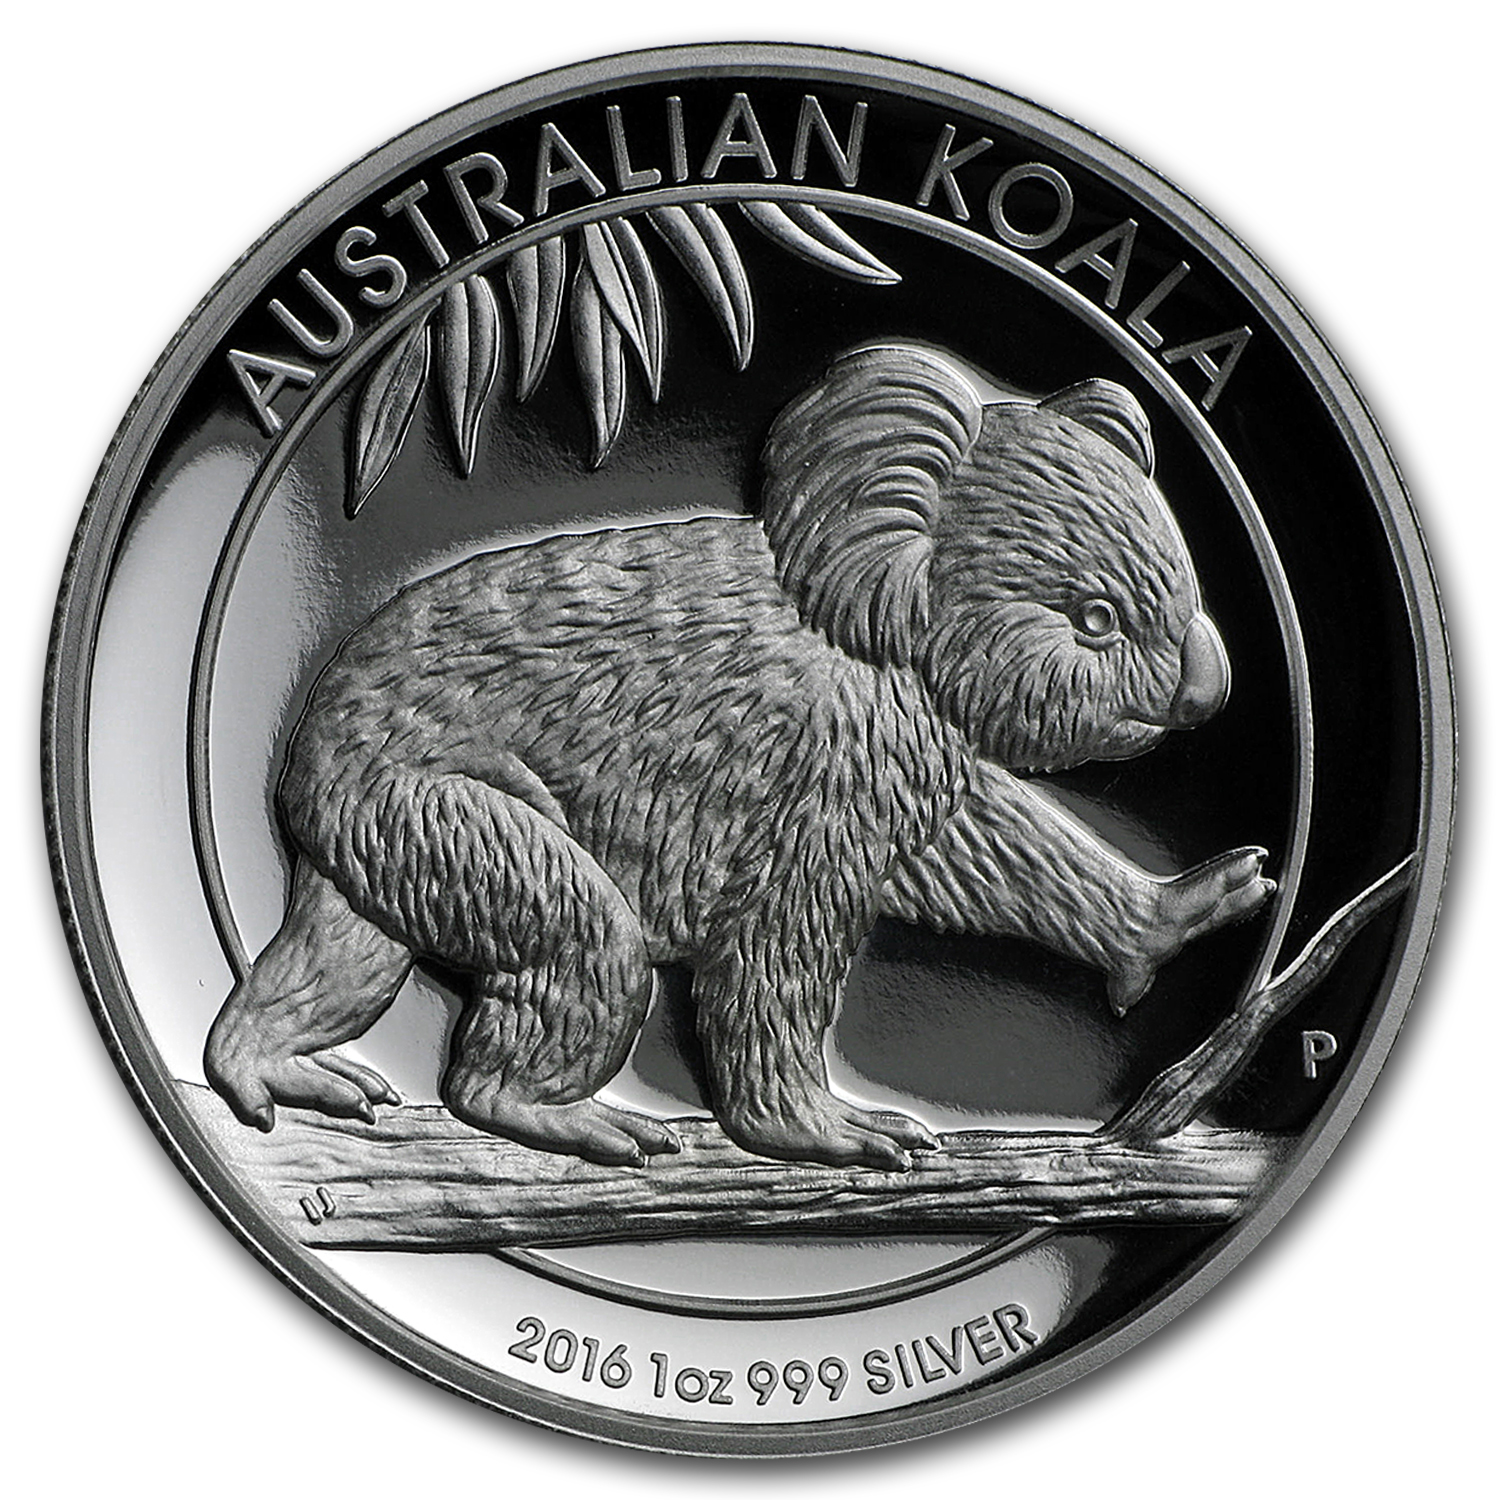 2016 Australia 1 oz Silver Koala Proof (High Relief, w/Box & COA)